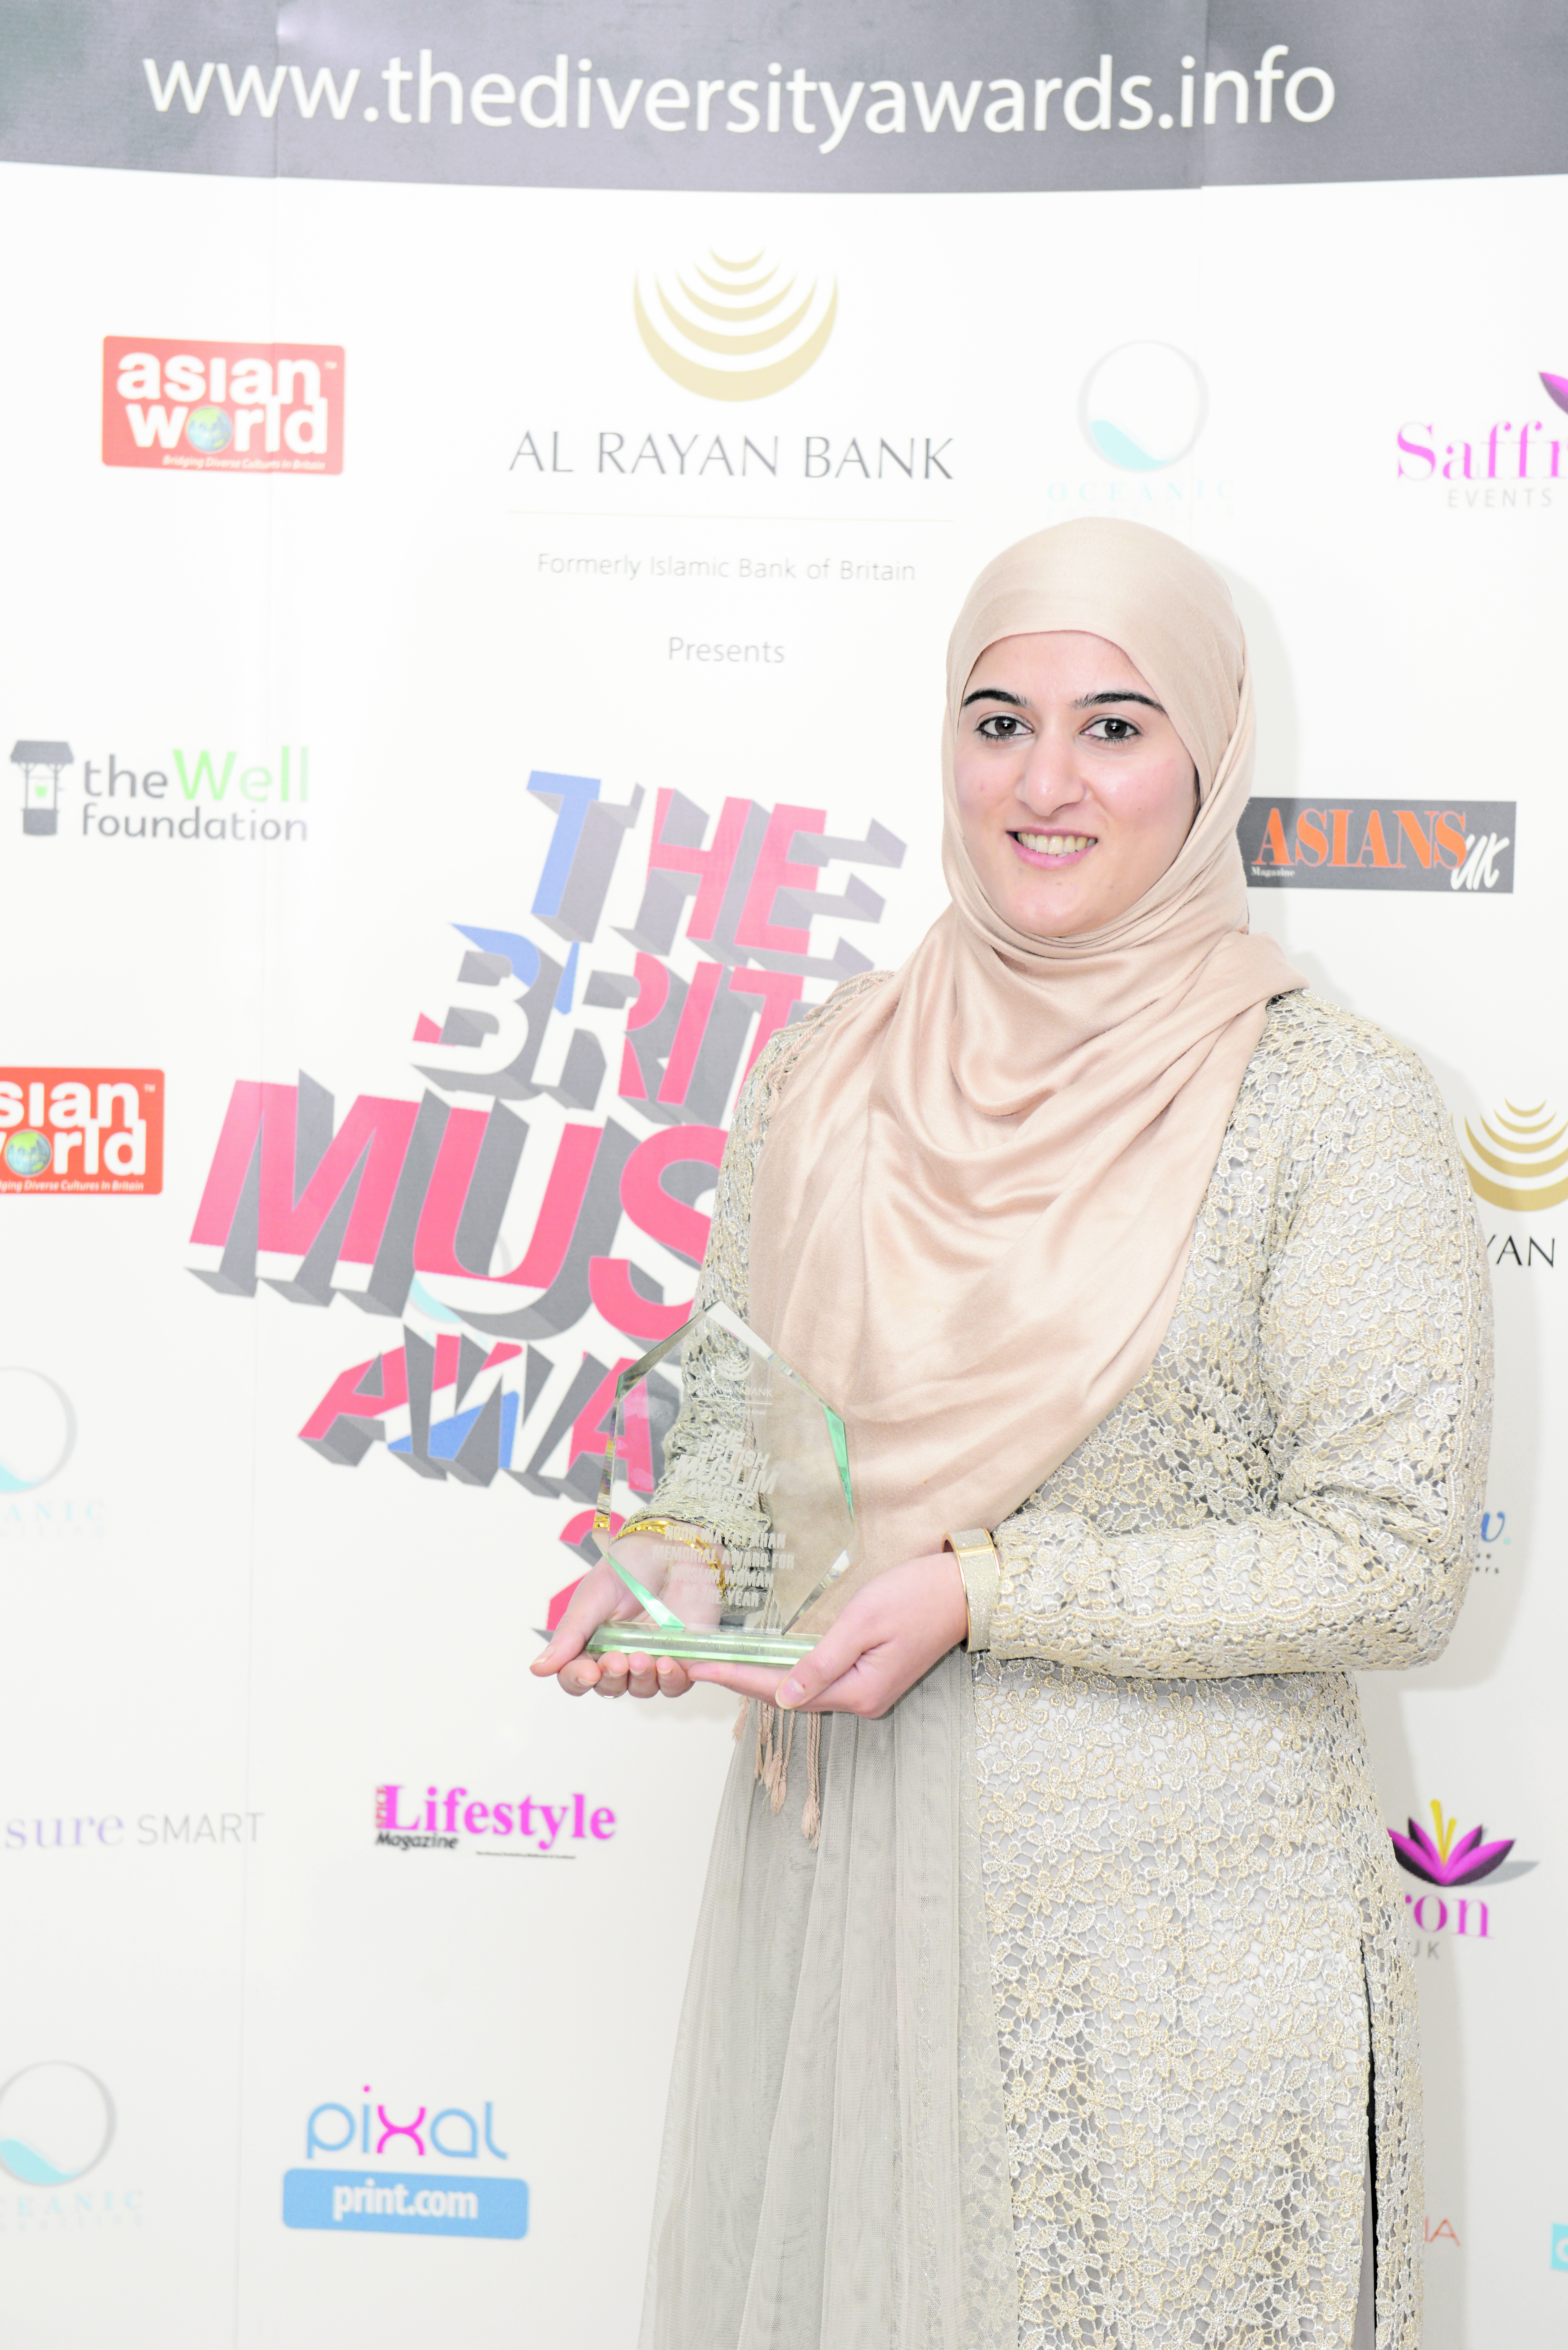 7. Noor Inayat Khan Memorial Awards for Muslim Woman of the Year